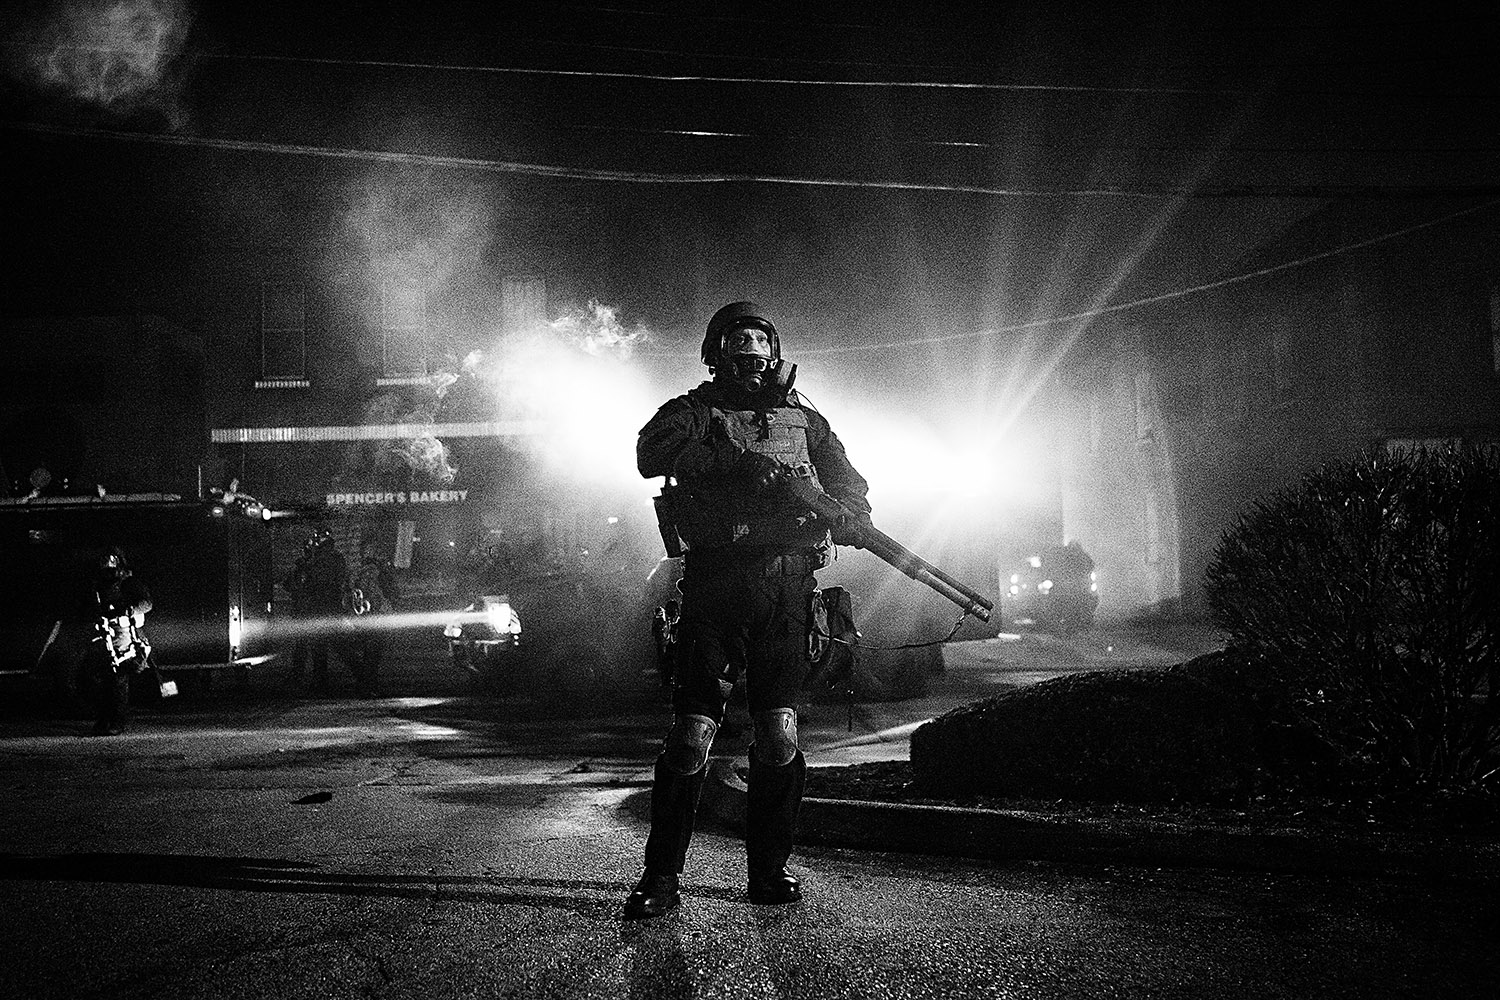 FERGUSON, MO - NOVEMBER 25: A riot police officer wades into a cloud of tear gas as numerous police units respond to the destruction of a police car parked outside the Ferguson City Hall. Angered protesters marched past downtown Ferguson a night after the riots and destruction followed the announcement of the grand jury's decision not to indict white police officer Darren Wilson in the death of unarmed black teen Michael Brown. (Photo by Benjamin Lowy/Reportage by Getty Images)